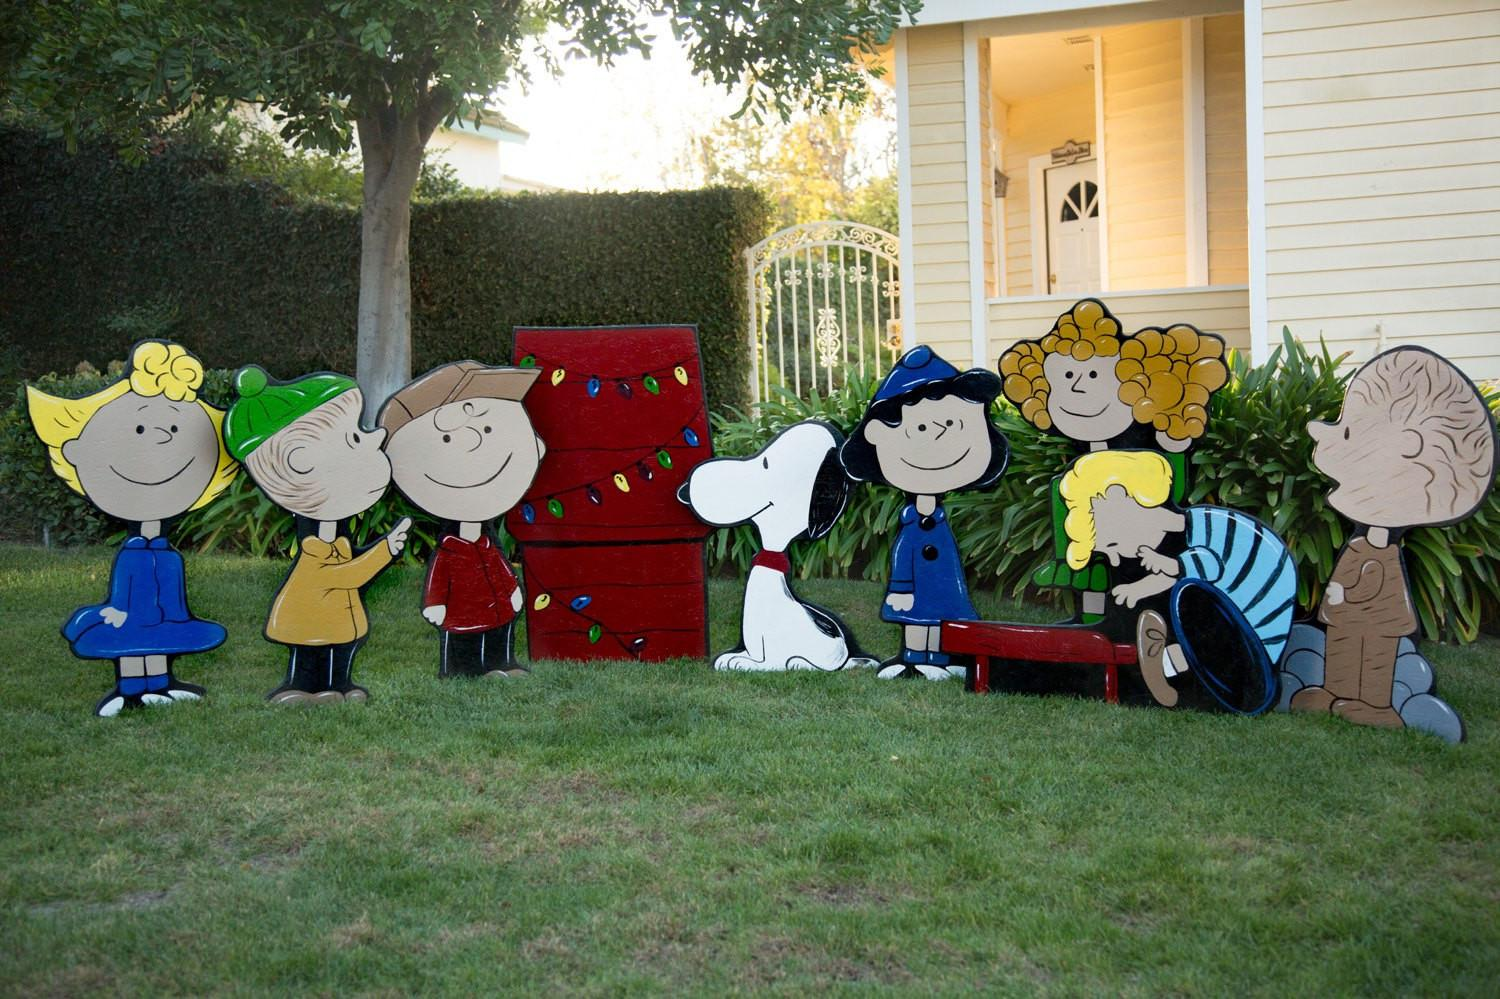 Wooden Charlie Brown Christmas Yard Decorations Patterns